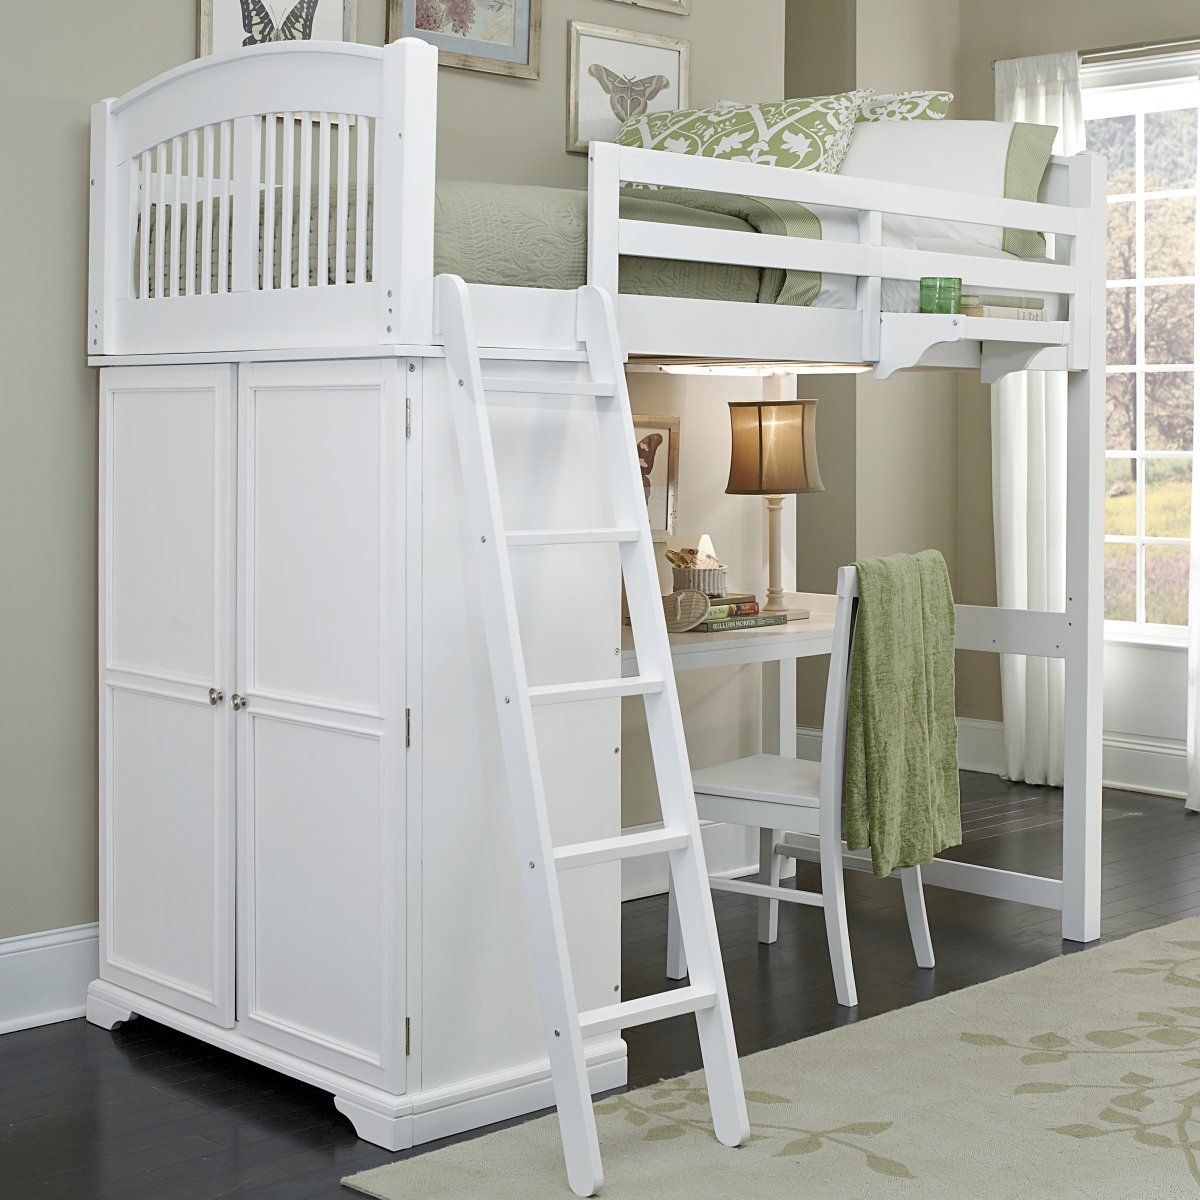 Locker Loft Bed   White   Loft Beds At Simply Bunk Beds